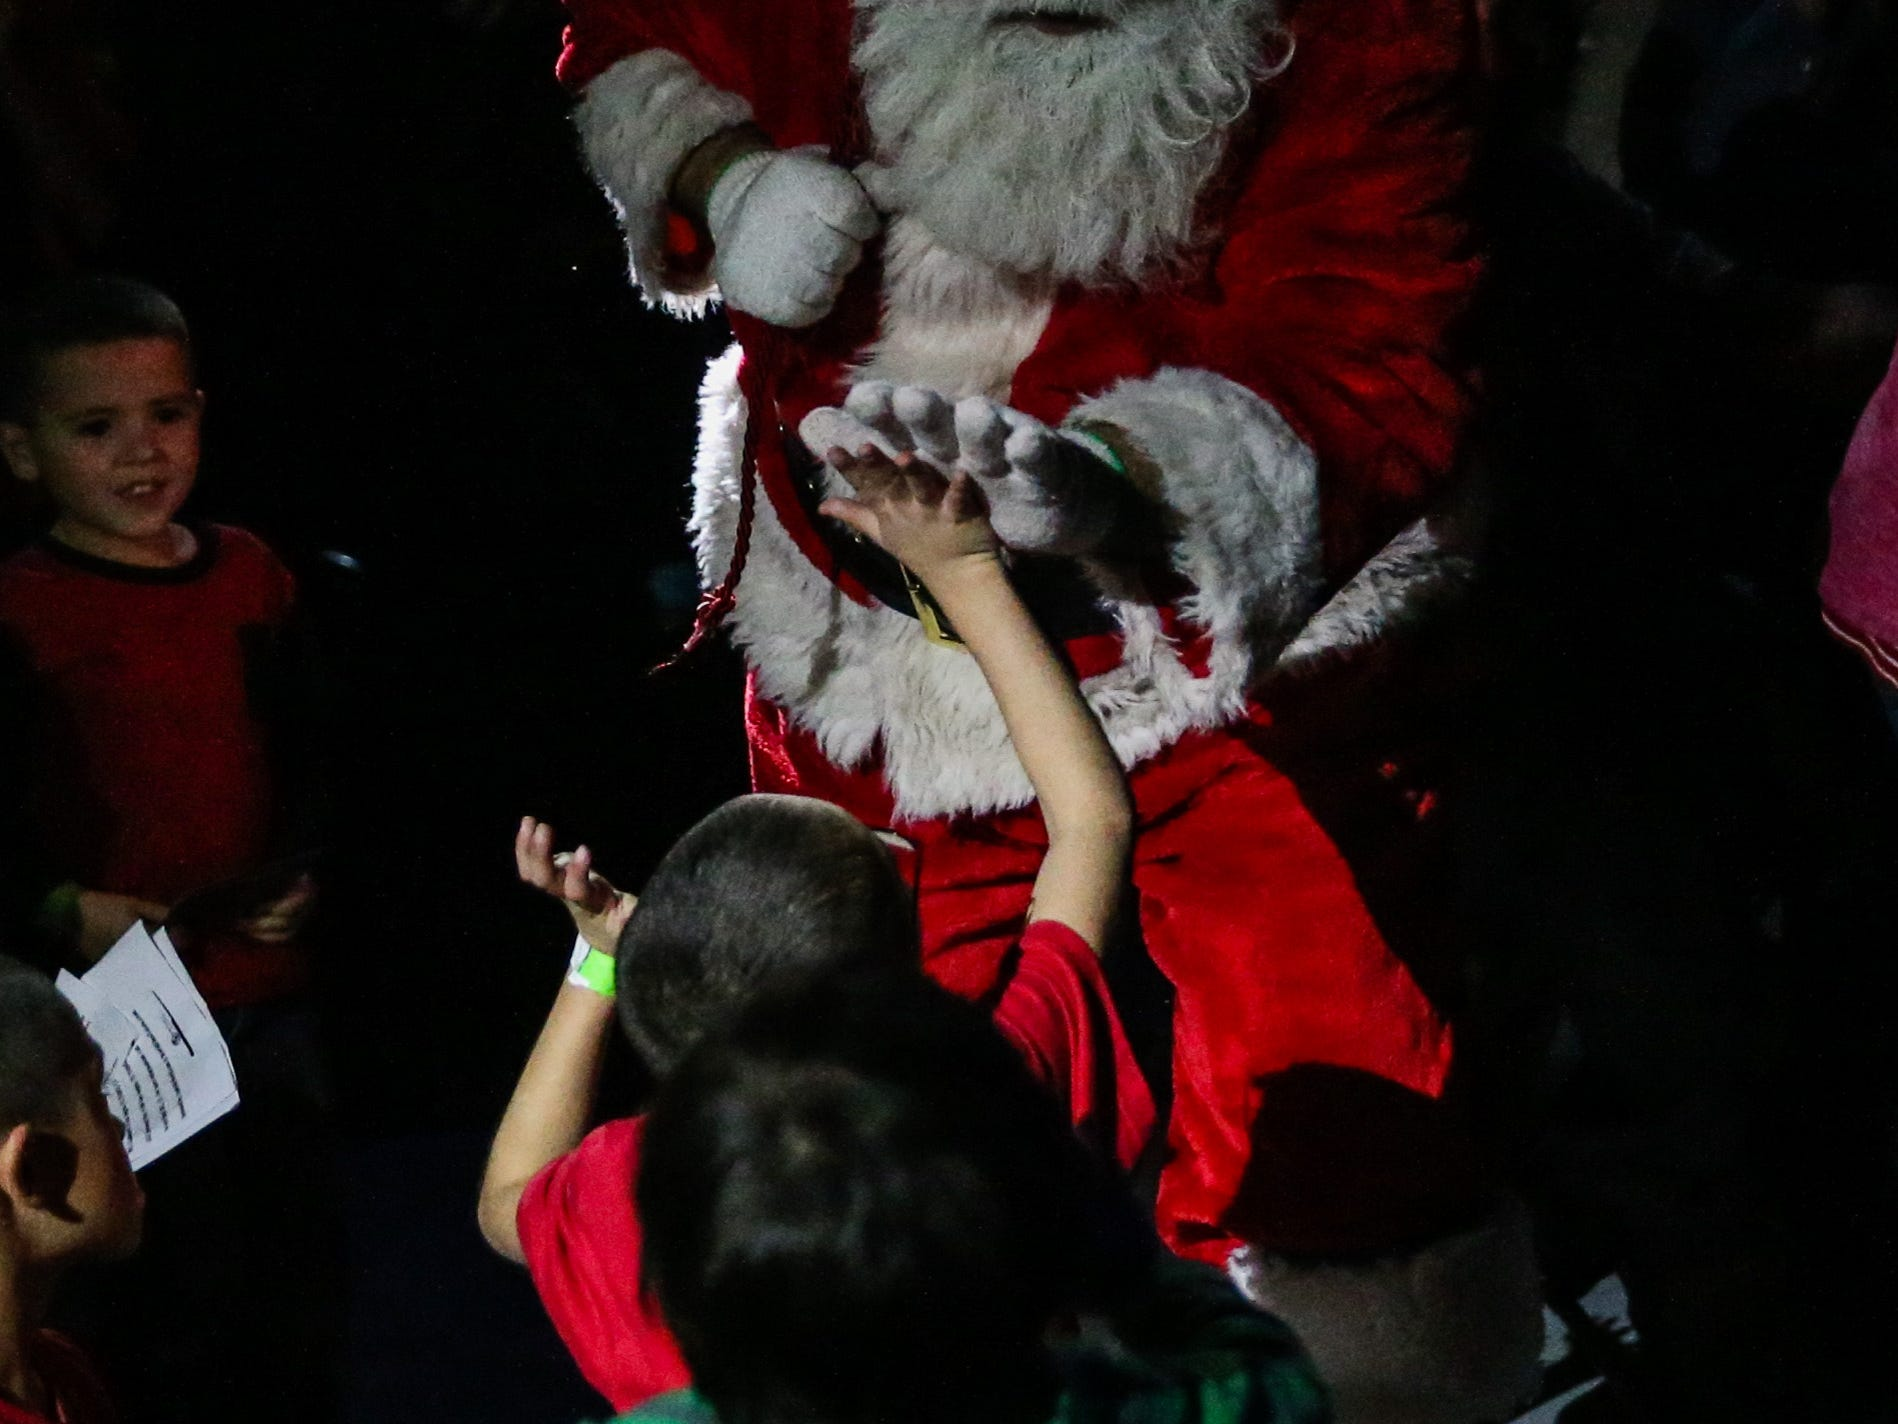 Santa greets a kid as he makes his way through the crowd at the In the Spirit of Christmas party Saturday, Dec. 15, 2018, at the Southside Recreation Center.